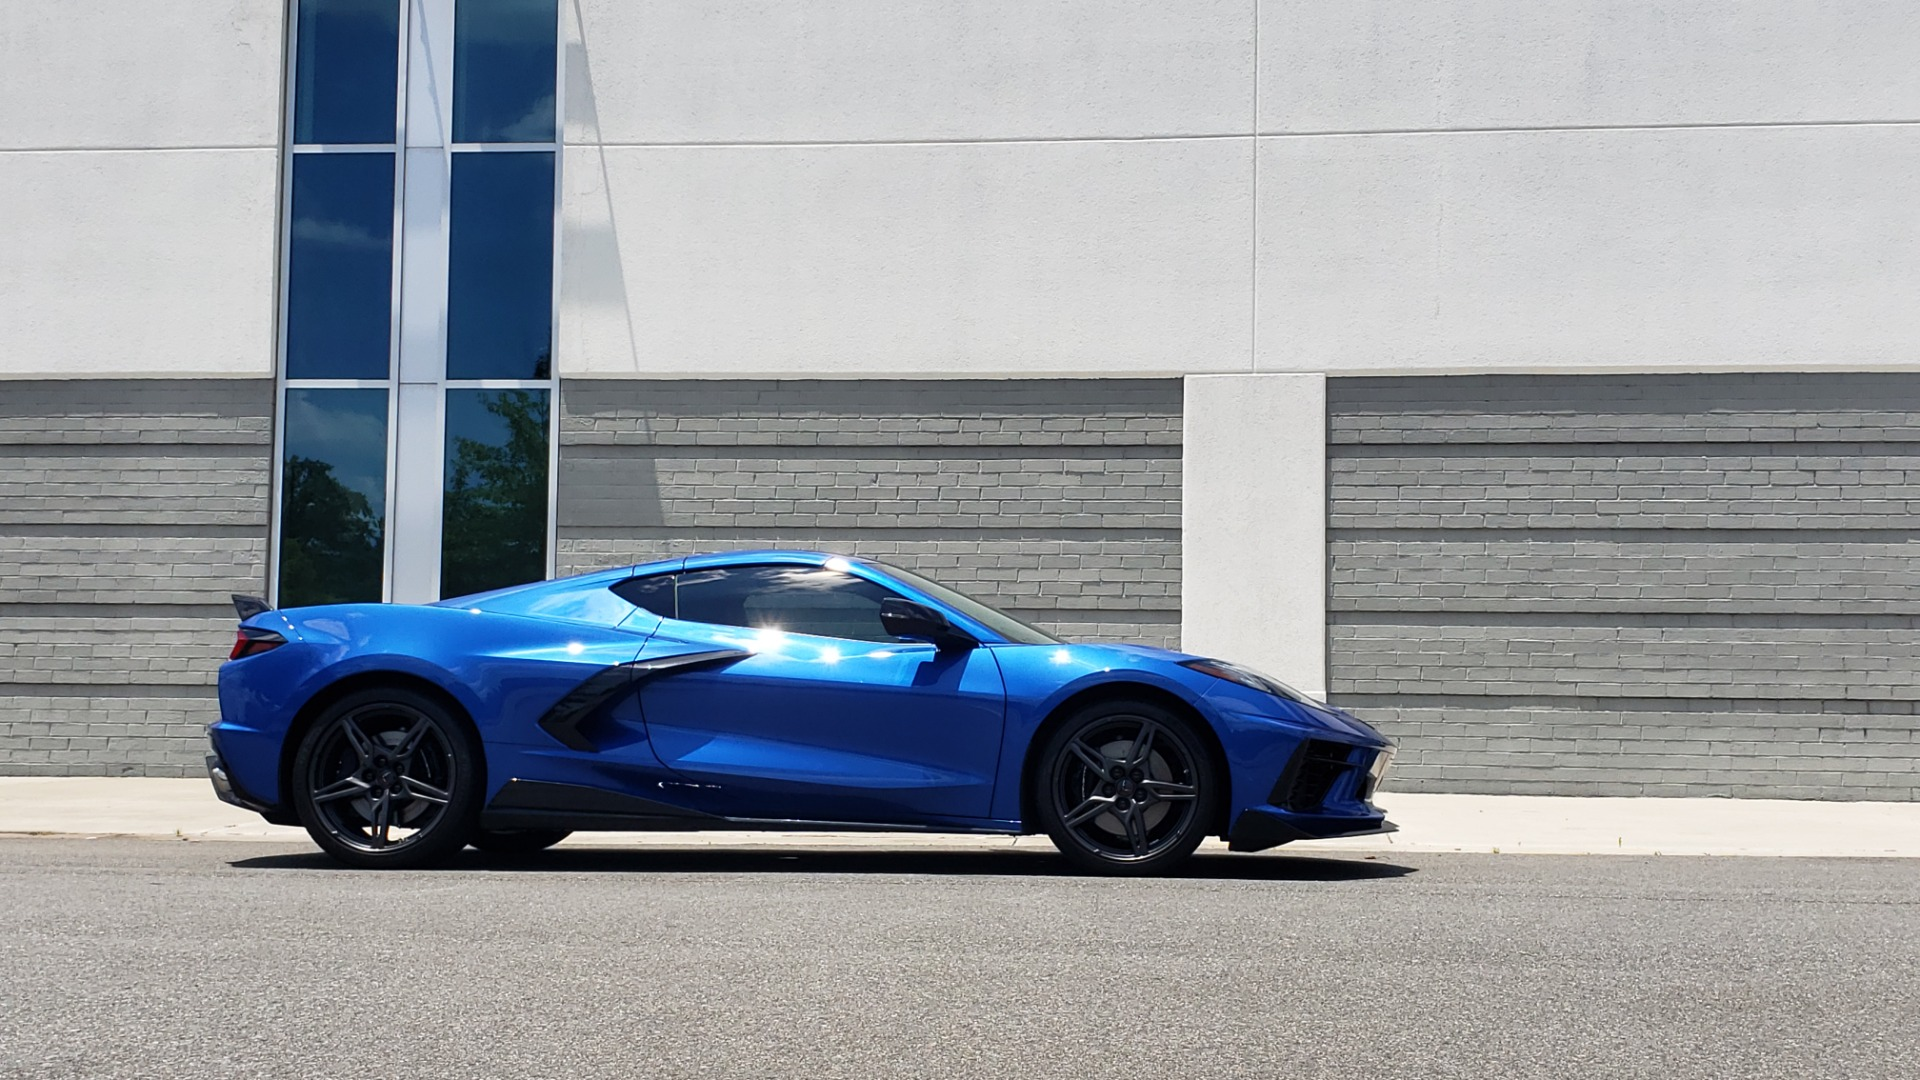 Used 2020 Chevrolet CORVETTE C8 STINGRAY COUPE 2LT / PERF & Z51 PKG / NAV / BOSE / 8-SPD AUTO / REARVIEW for sale Sold at Formula Imports in Charlotte NC 28227 7